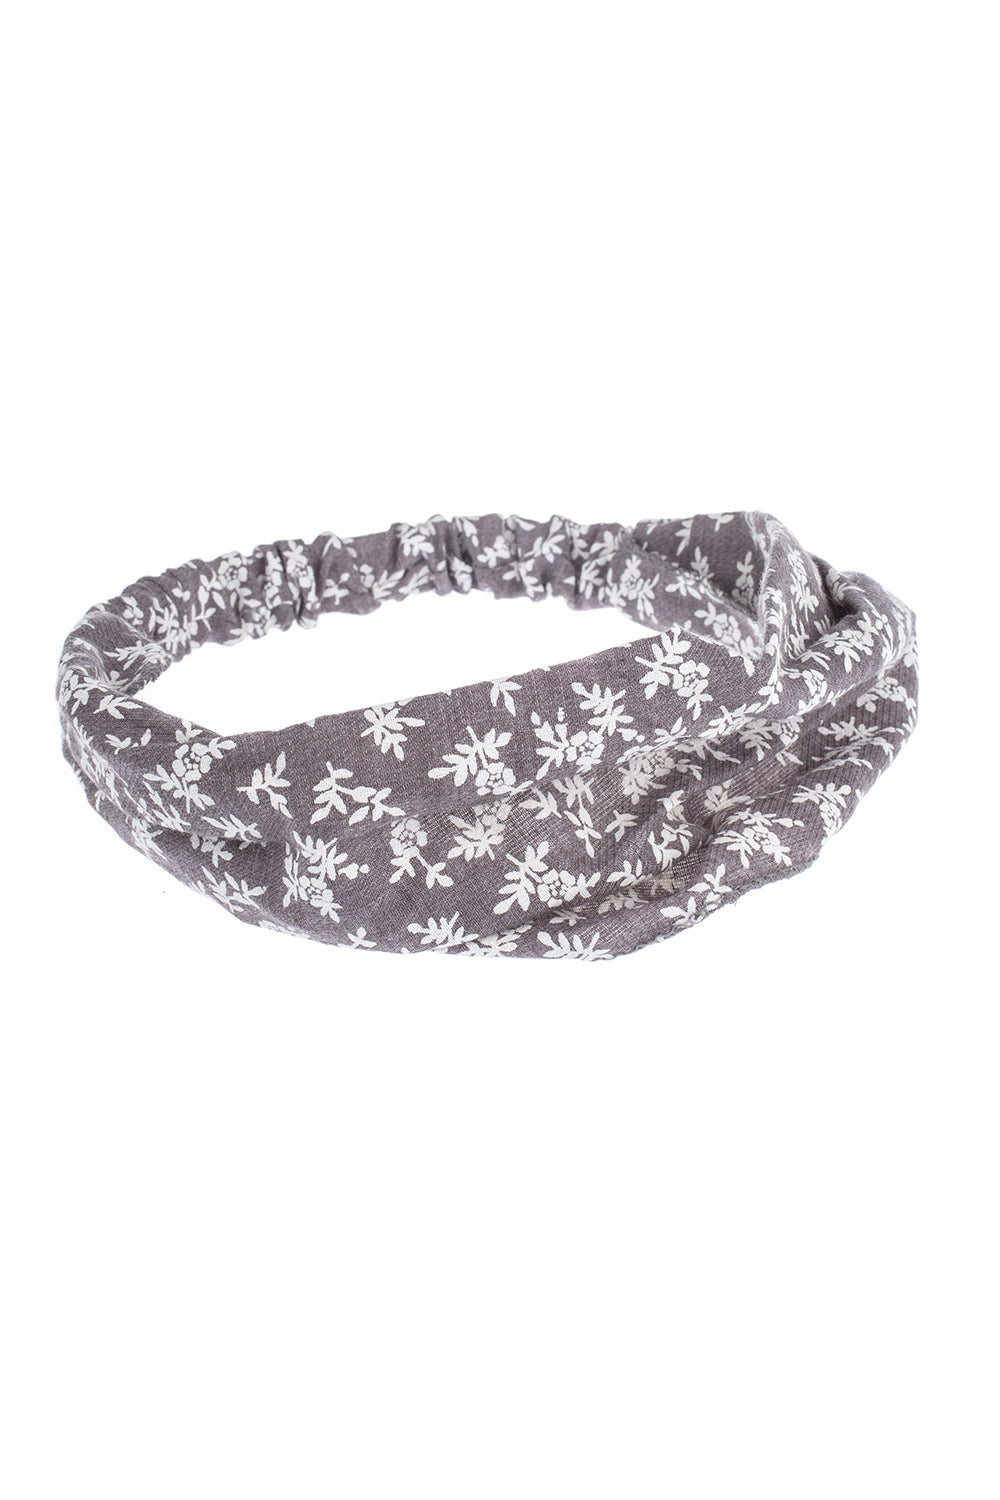 Type 2 Details Headband in Gray